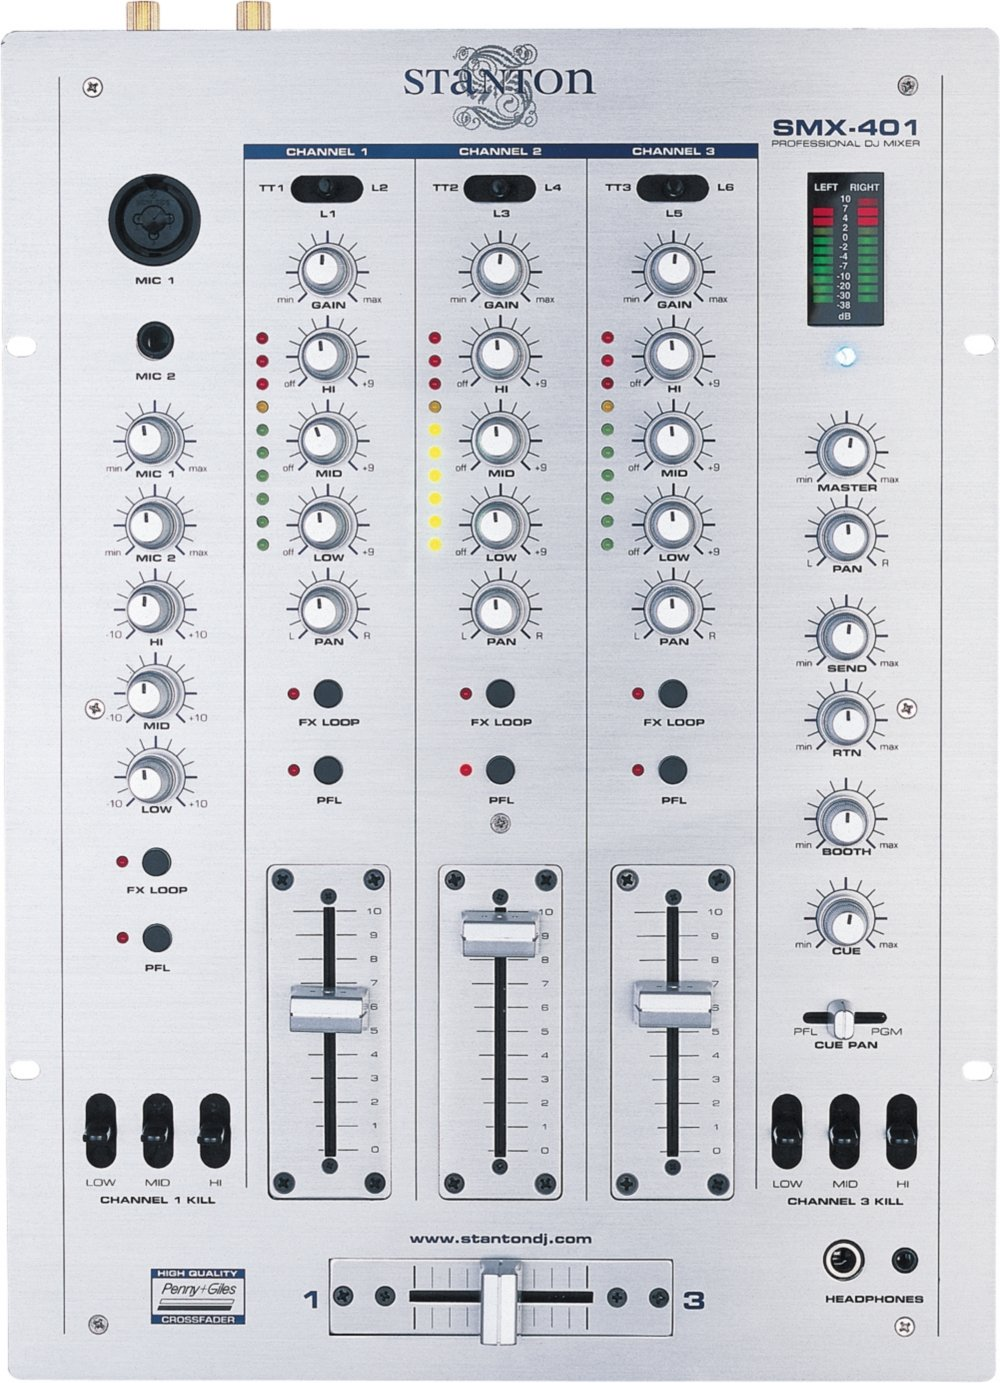 Amazon.com: Stanton SMX-401 3-Channel DJ Mixer (Discontinued by Manufacturer): Home Audio & Theater